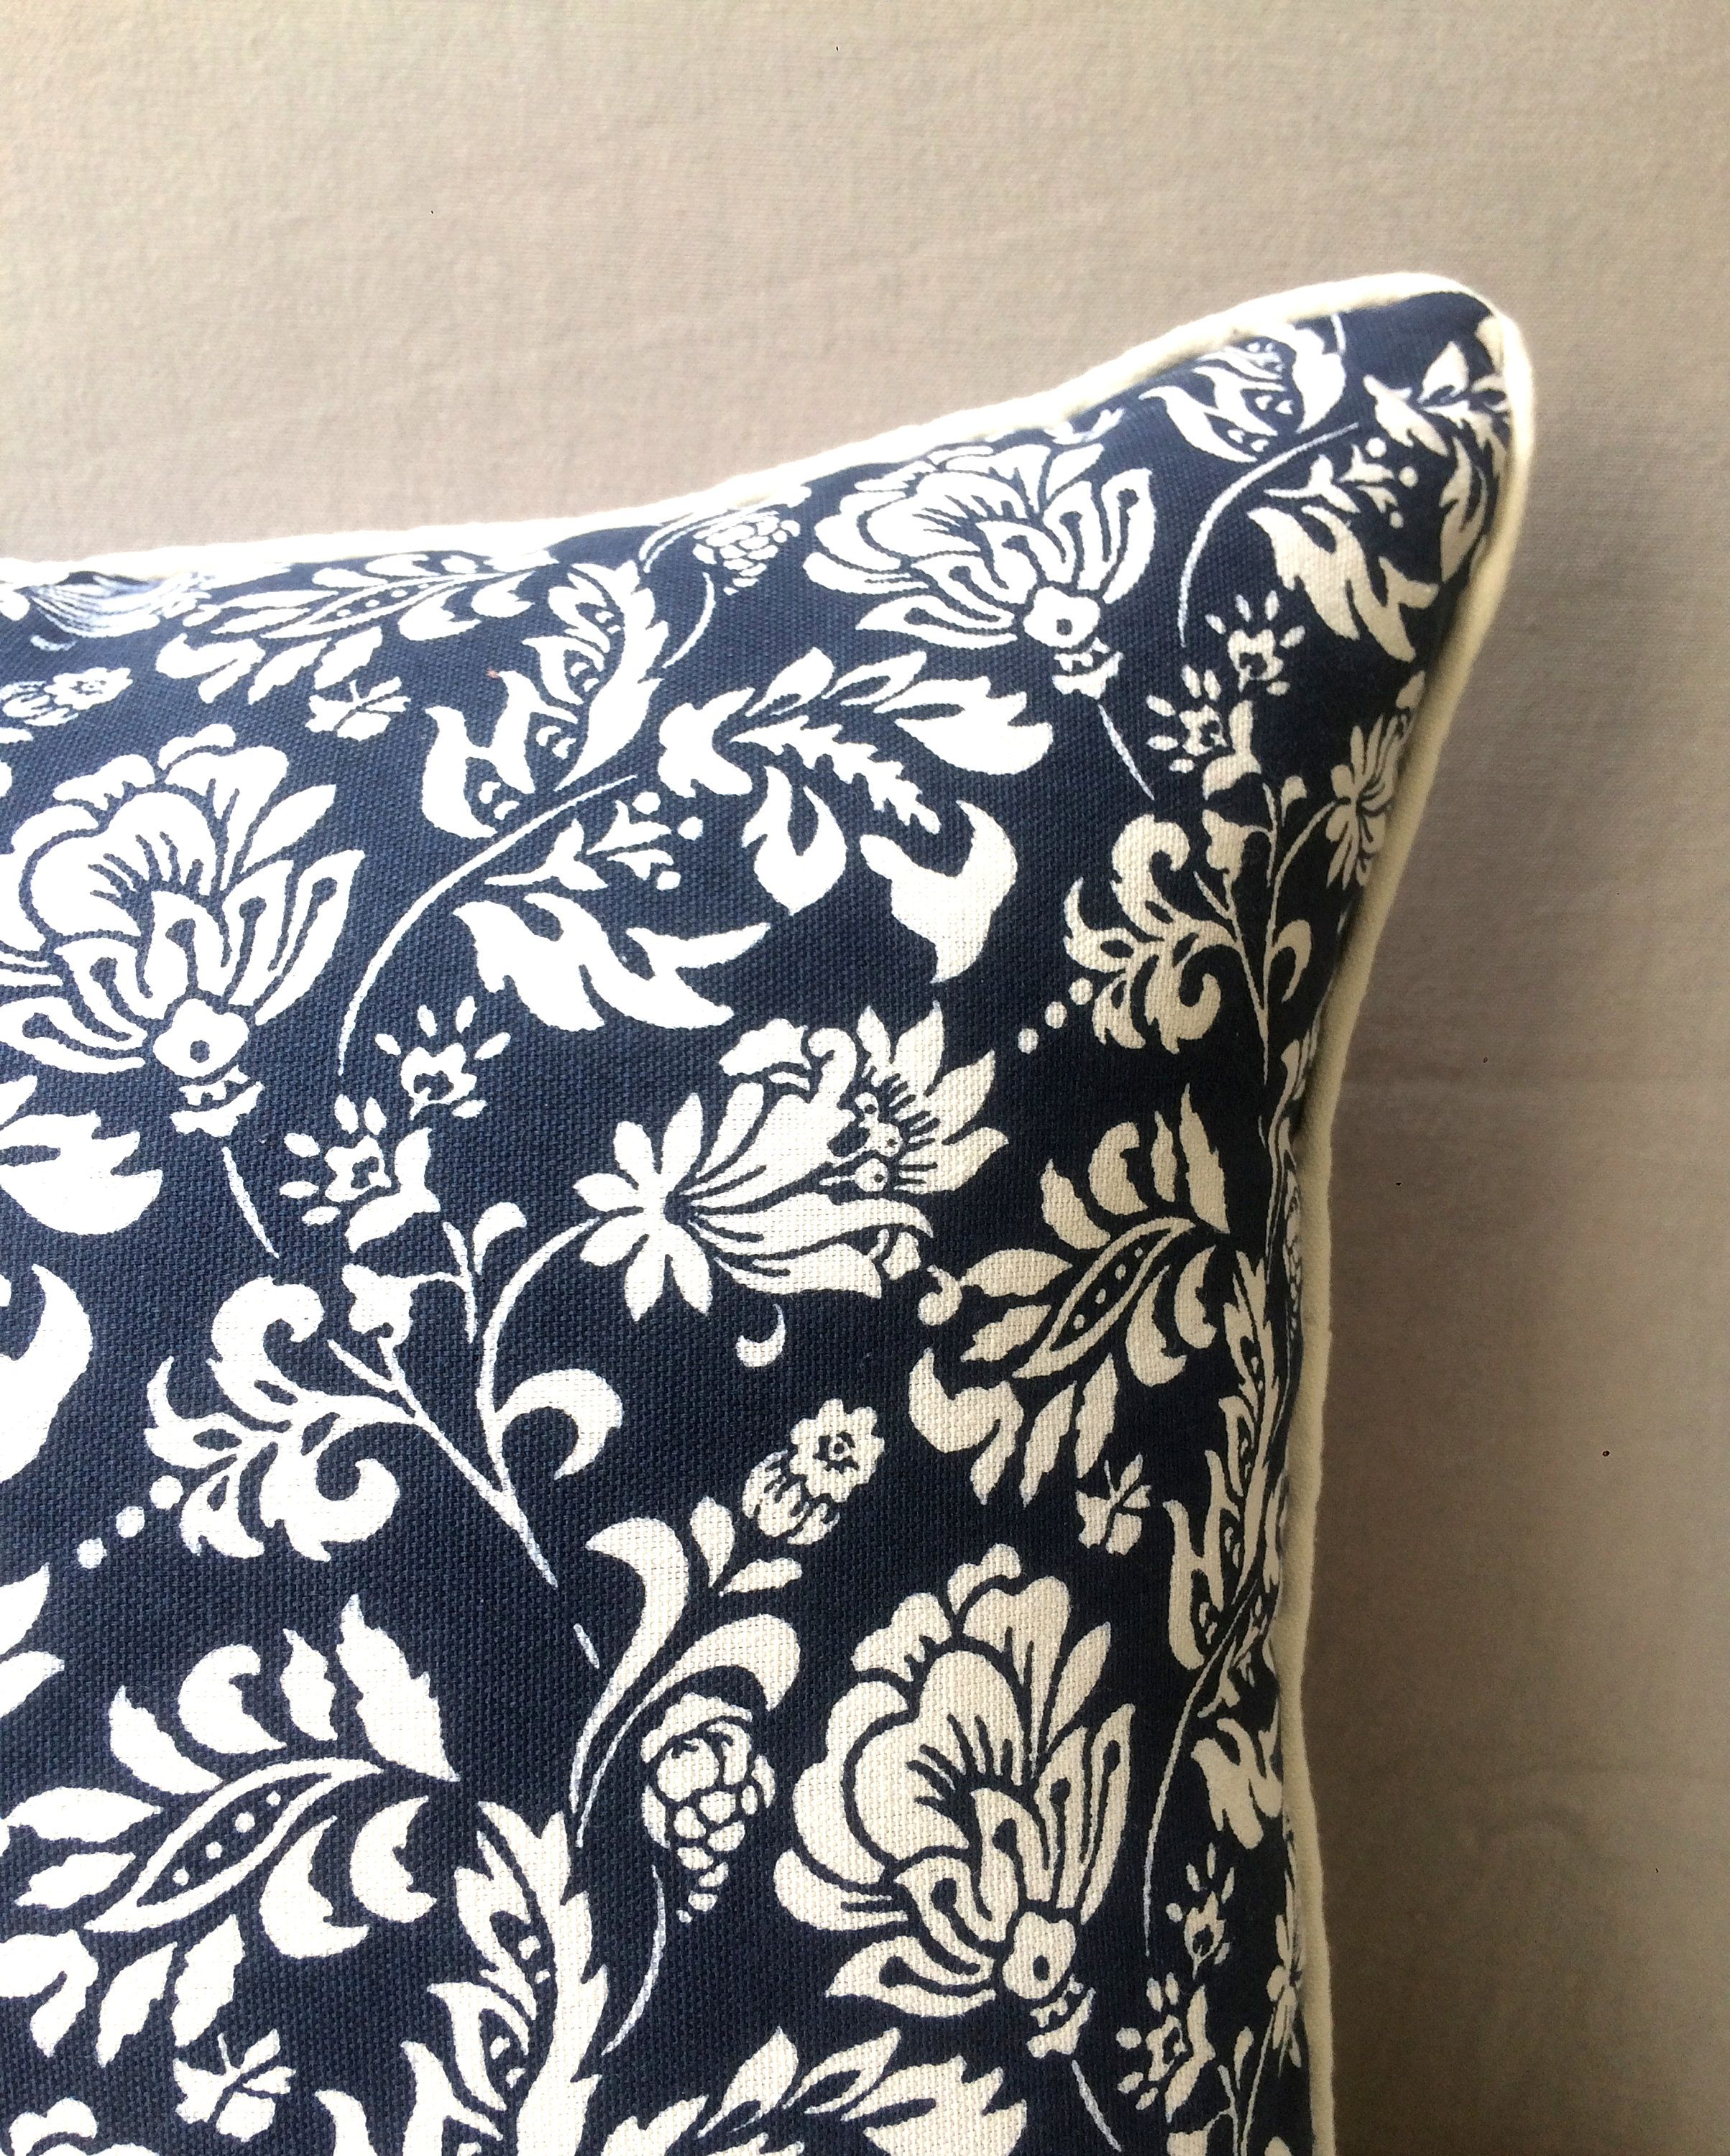 Floral printed cushion cover indigo pillow cover decor cushion